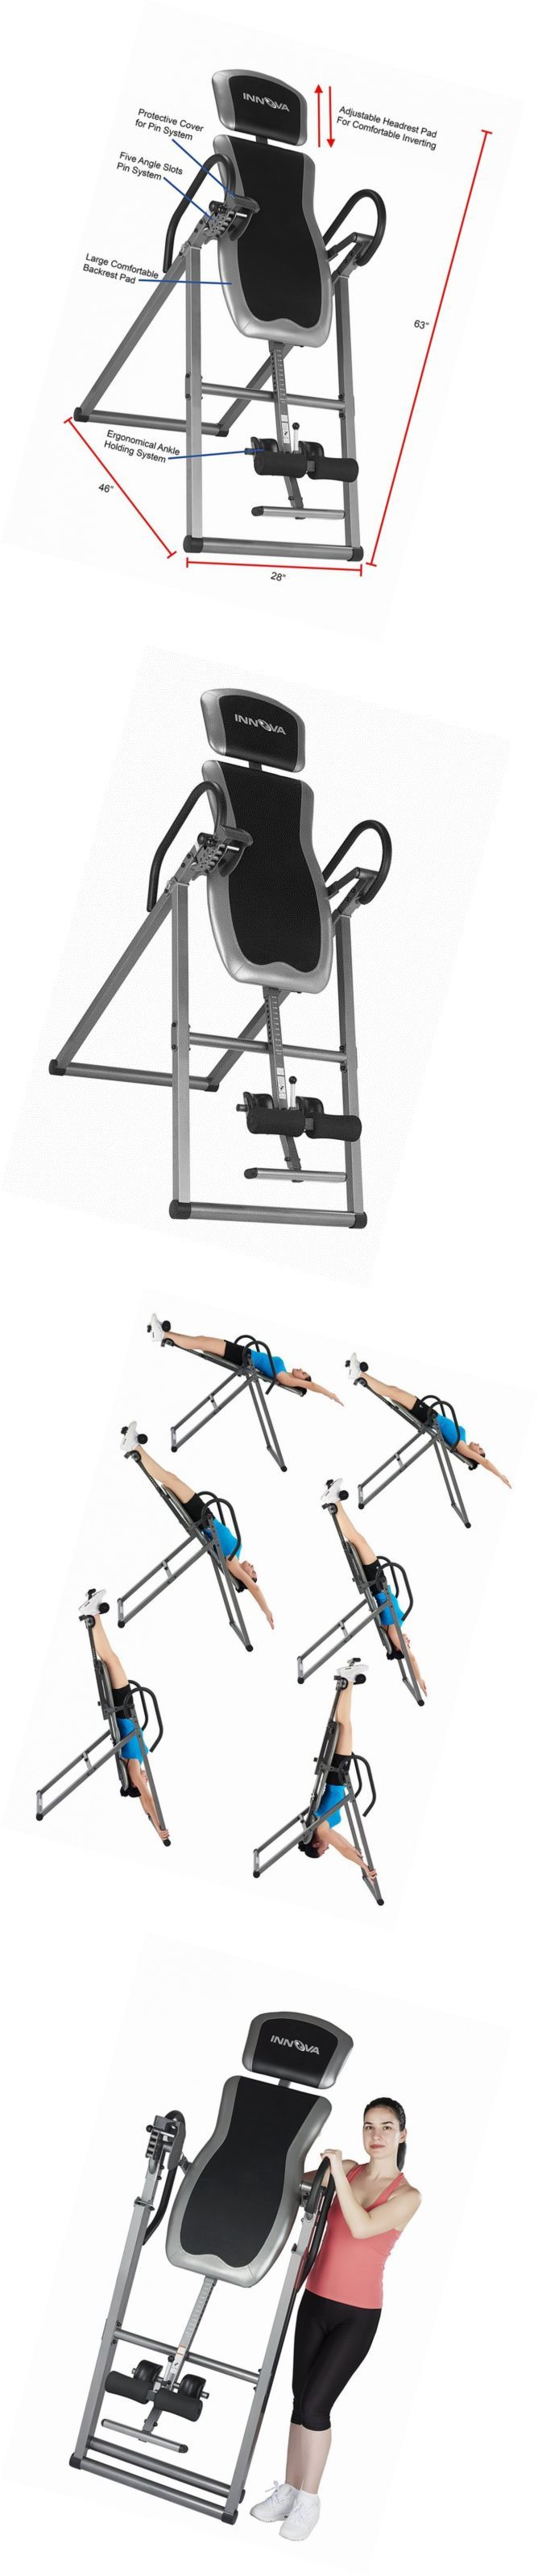 Inversion Tables 112954: Inversion Tables For Back Pain Table Body Power Stretching Therapy Machine New -> BUY IT NOW ONLY: $110.66 on eBay!